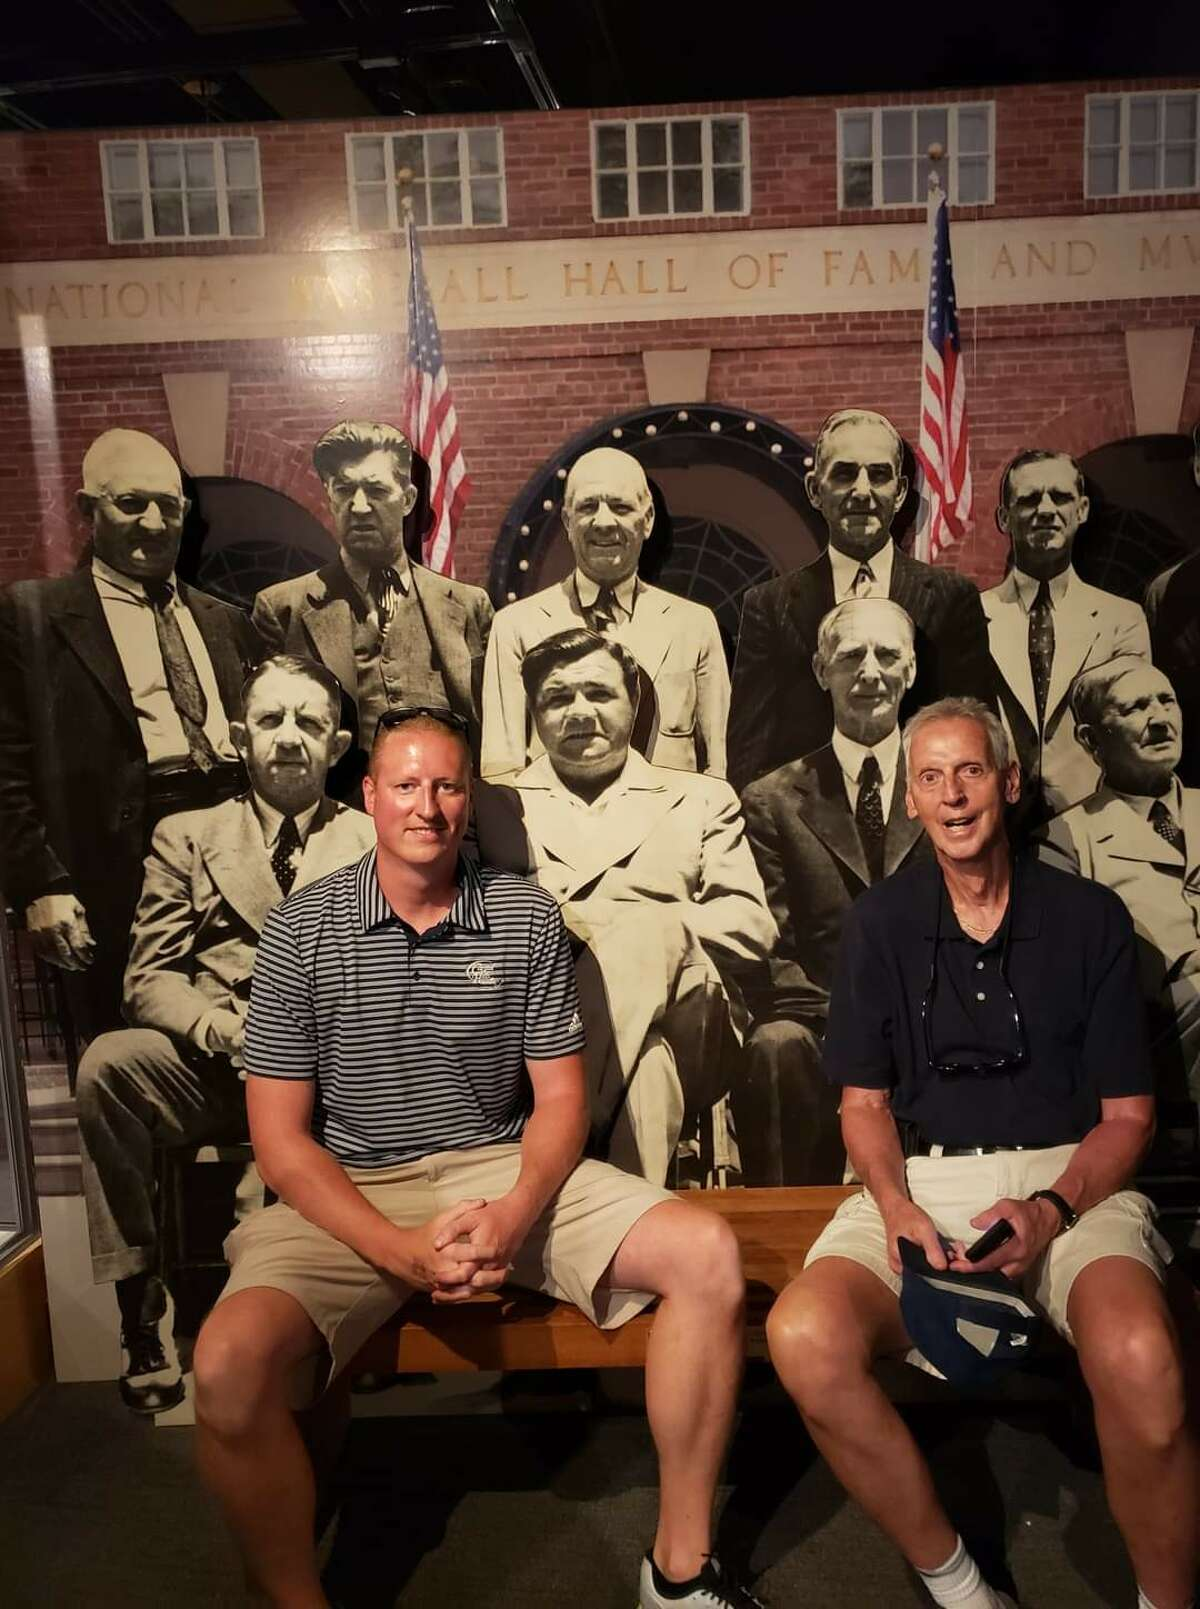 Travis Wilson, left, and his father, Greg Wilson, at the Hall of Fame for the induction of Mariano Rivera in 2019.